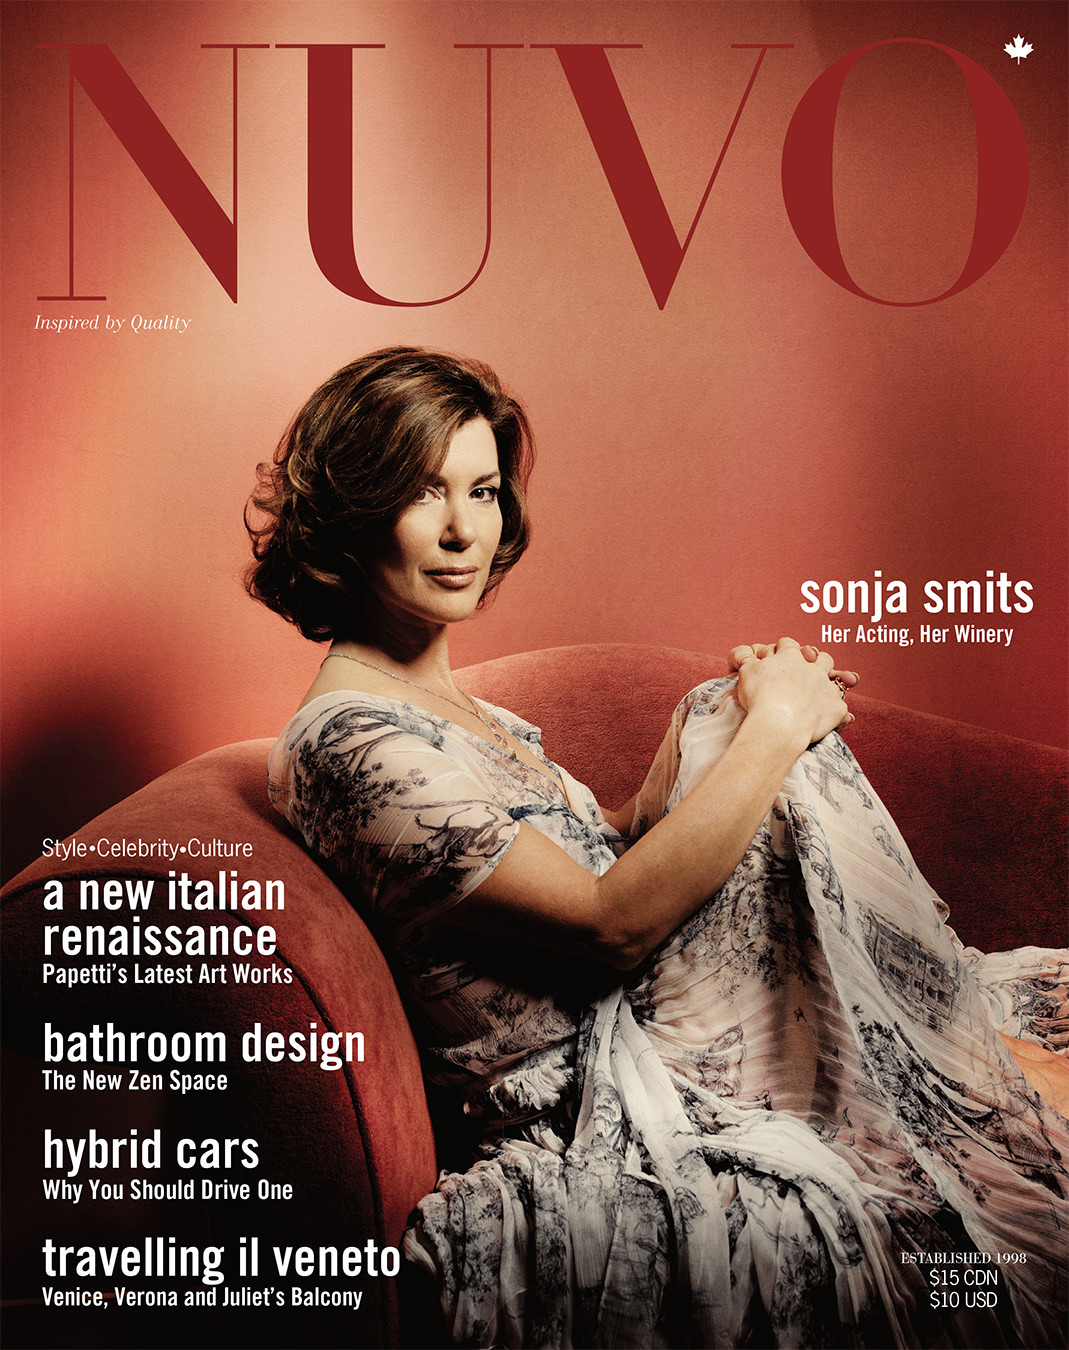 NUVO Magazine Spring 2005 Cover featuring Sonja Smits